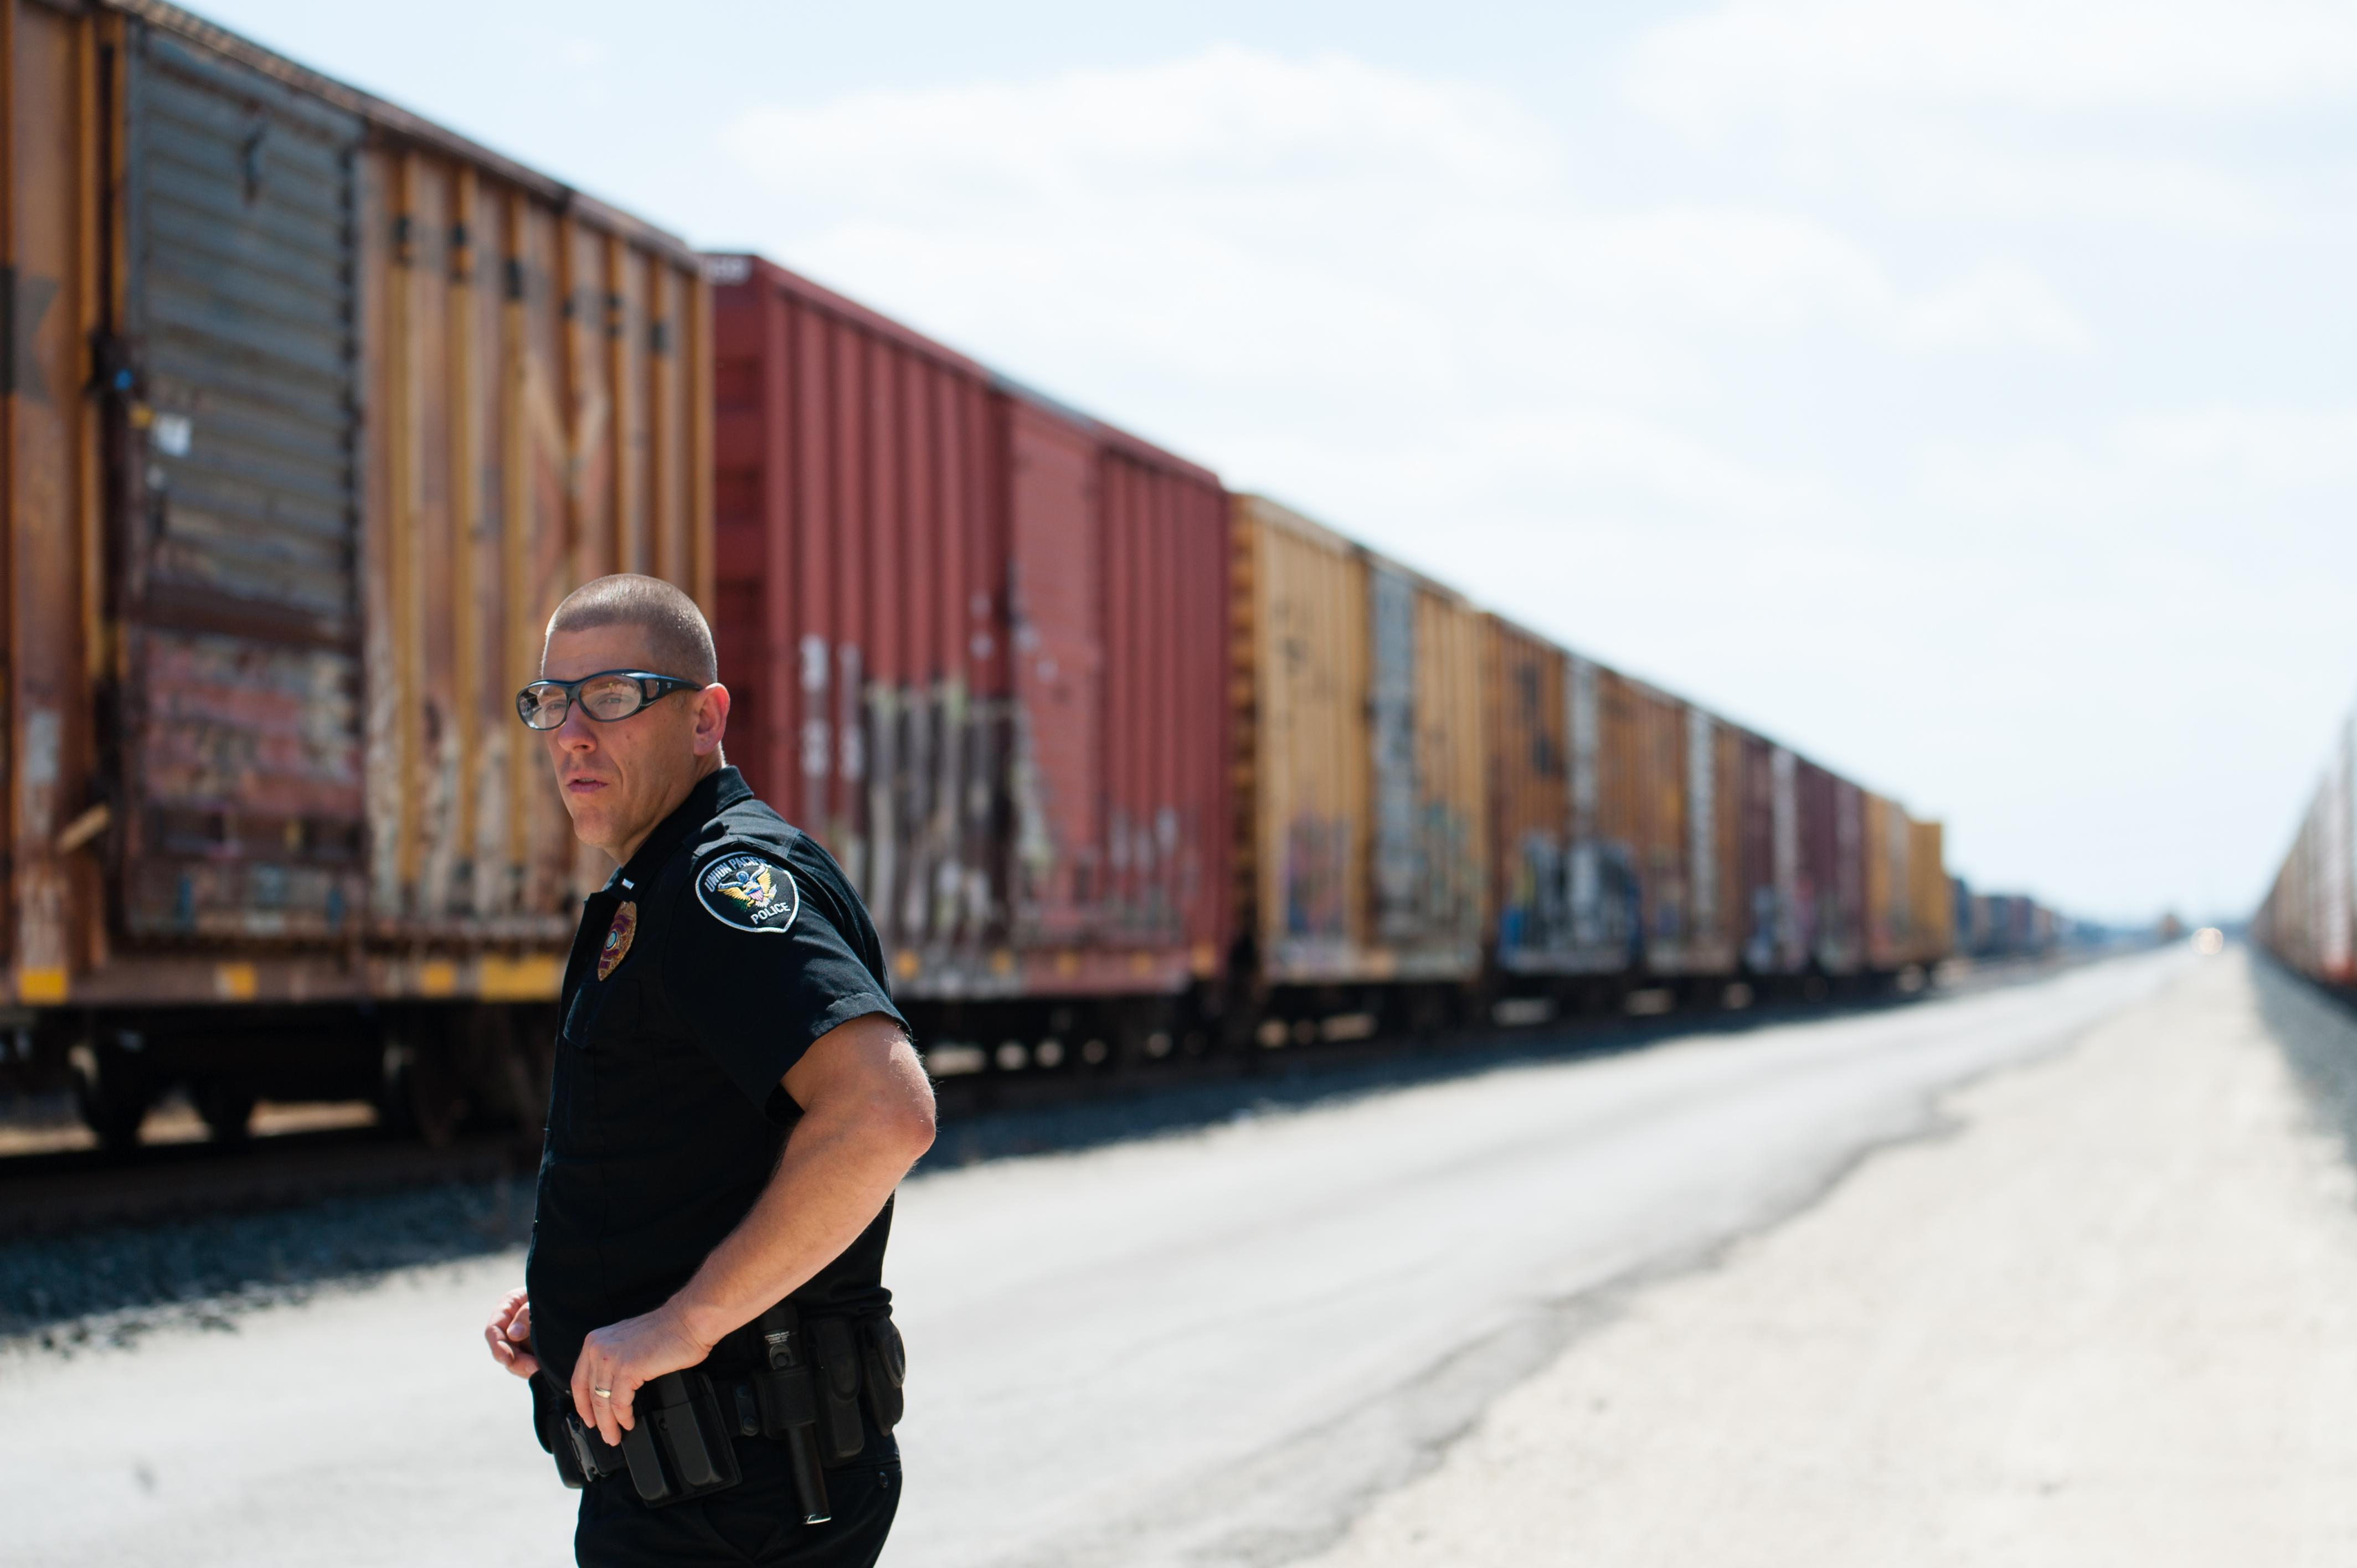 Up inside track safety union pacific special agents the badges behind the shield biocorpaavc